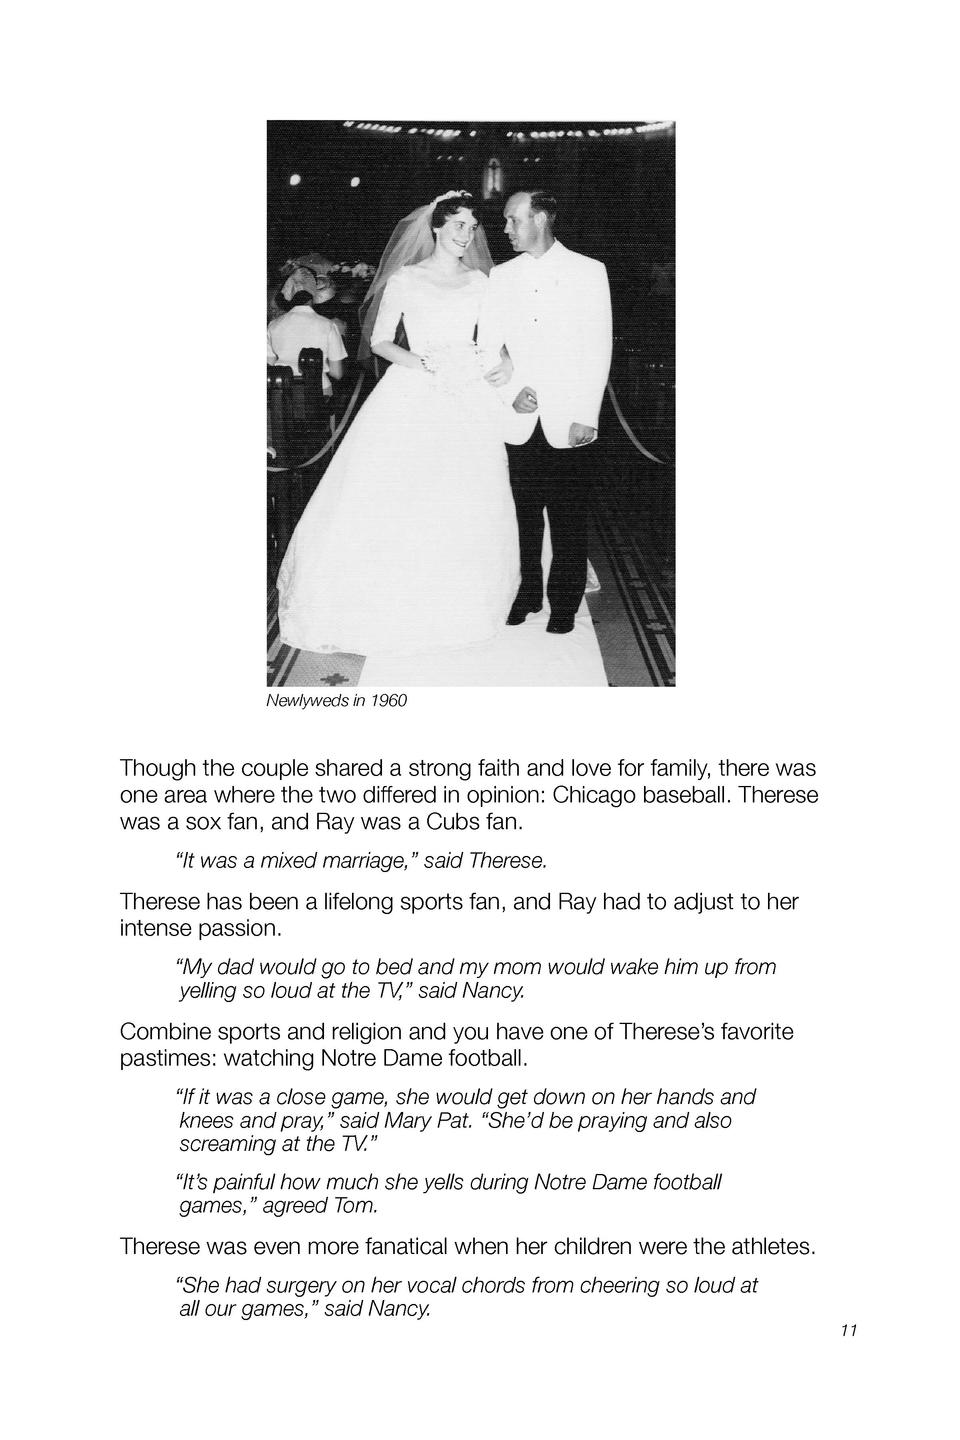 Newlyweds in 1960  Though the couple shared a strong faith and love for family, there was one area where the two differed ...